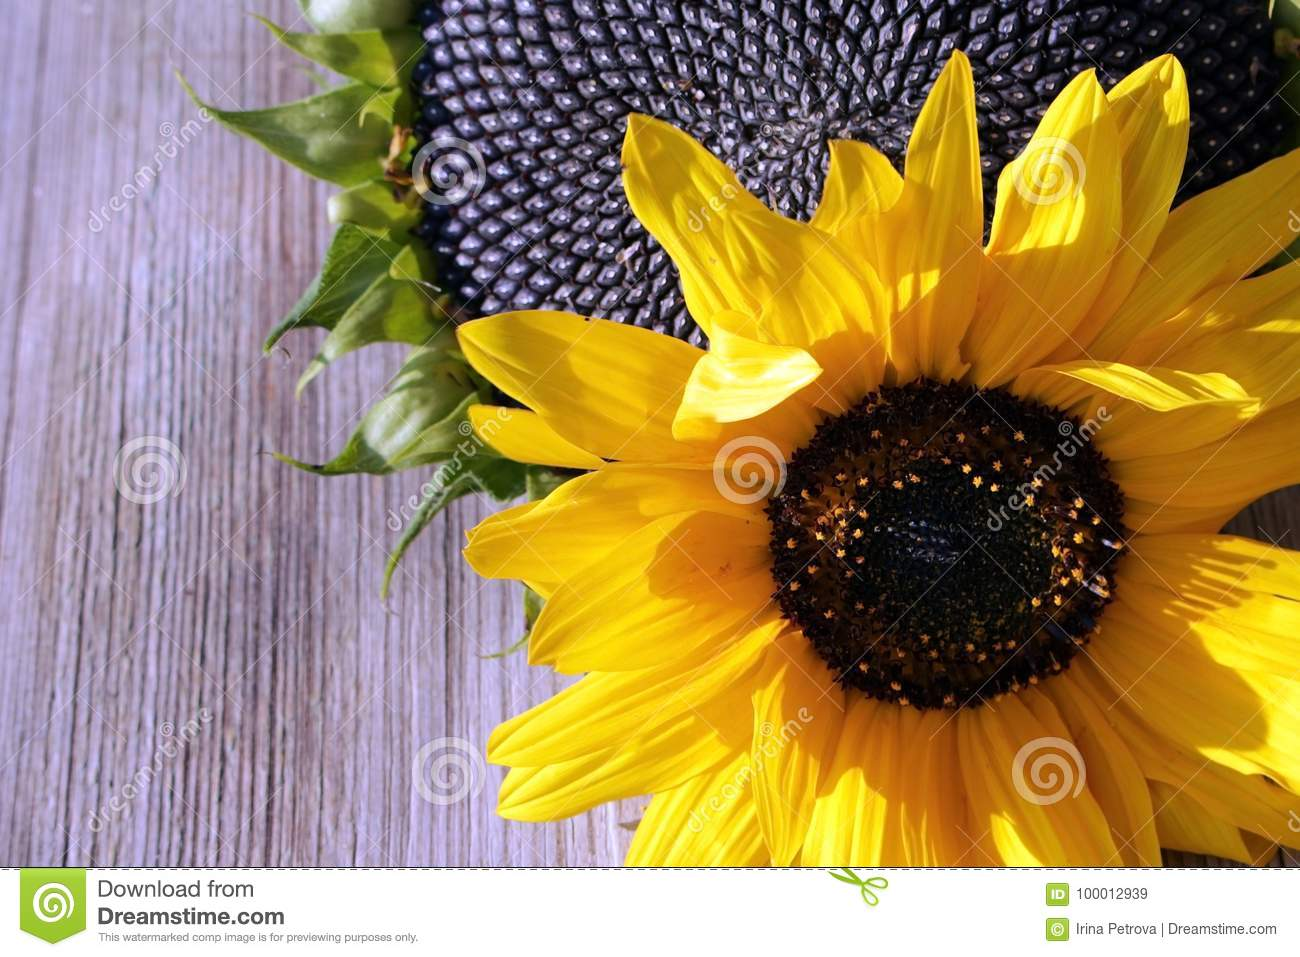 Bright flower of a sunflower with black seeds and bright yellow download bright flower of a sunflower with black seeds and bright yellow flower in the background mightylinksfo